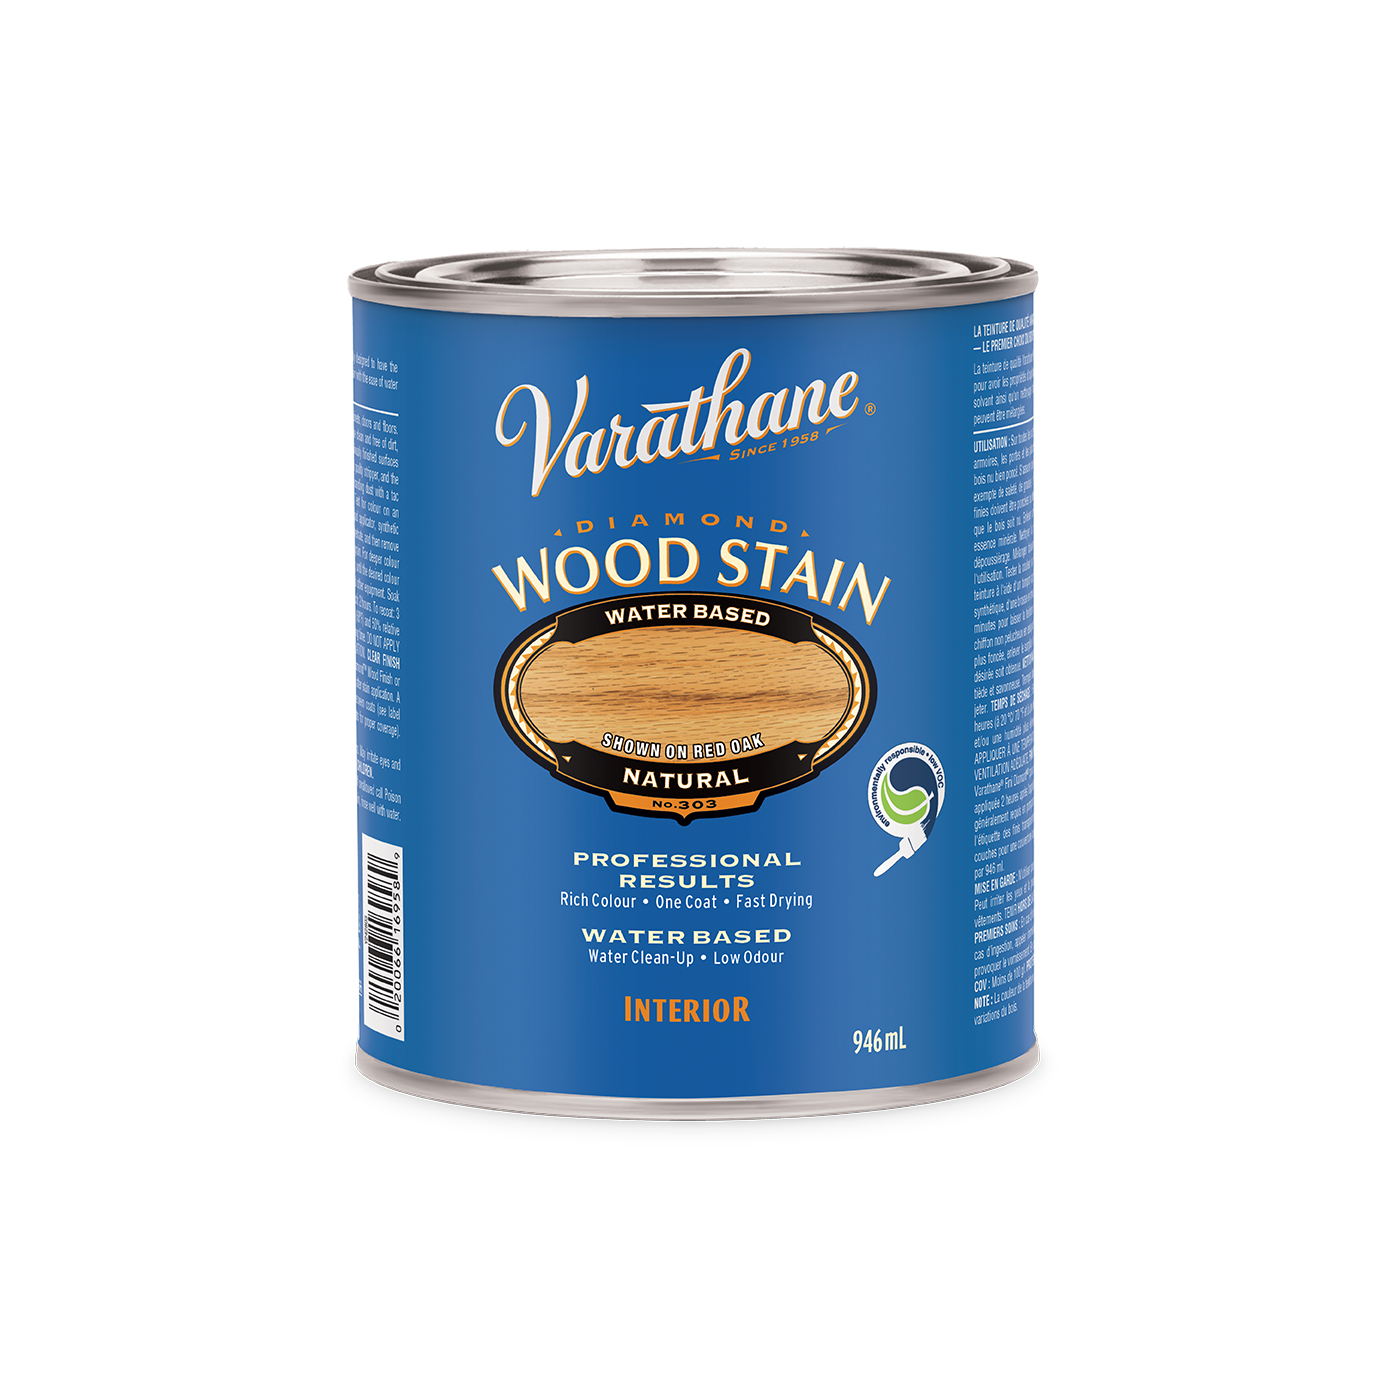 Varathane Diamond Wood Stain Interior Product Page